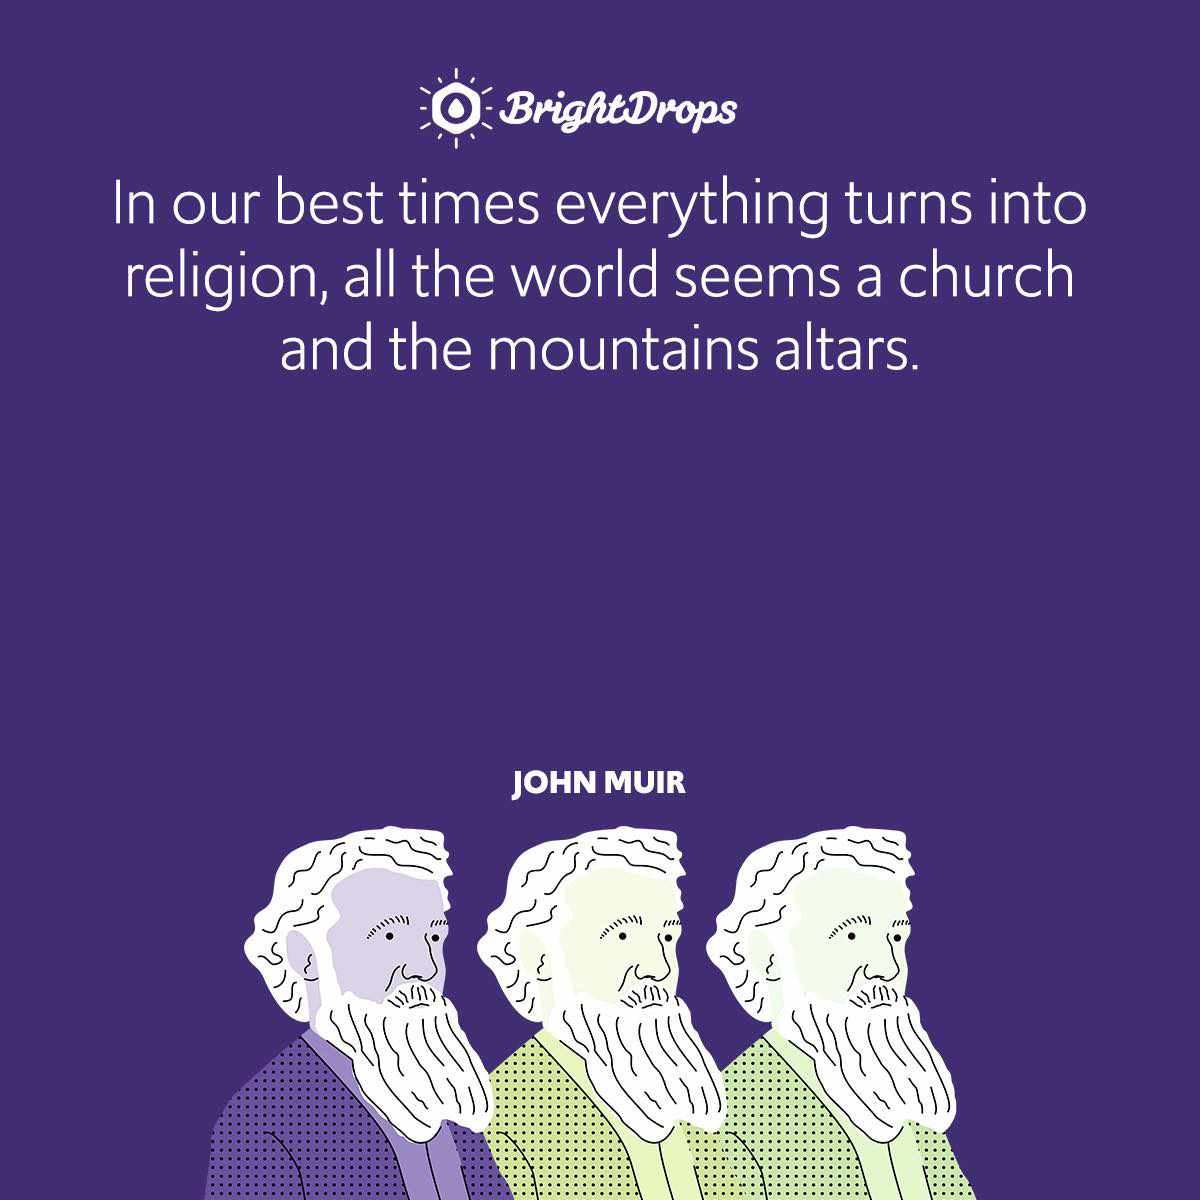 In our best times everything turns into religion, all the world seems a church and the mountains altars.